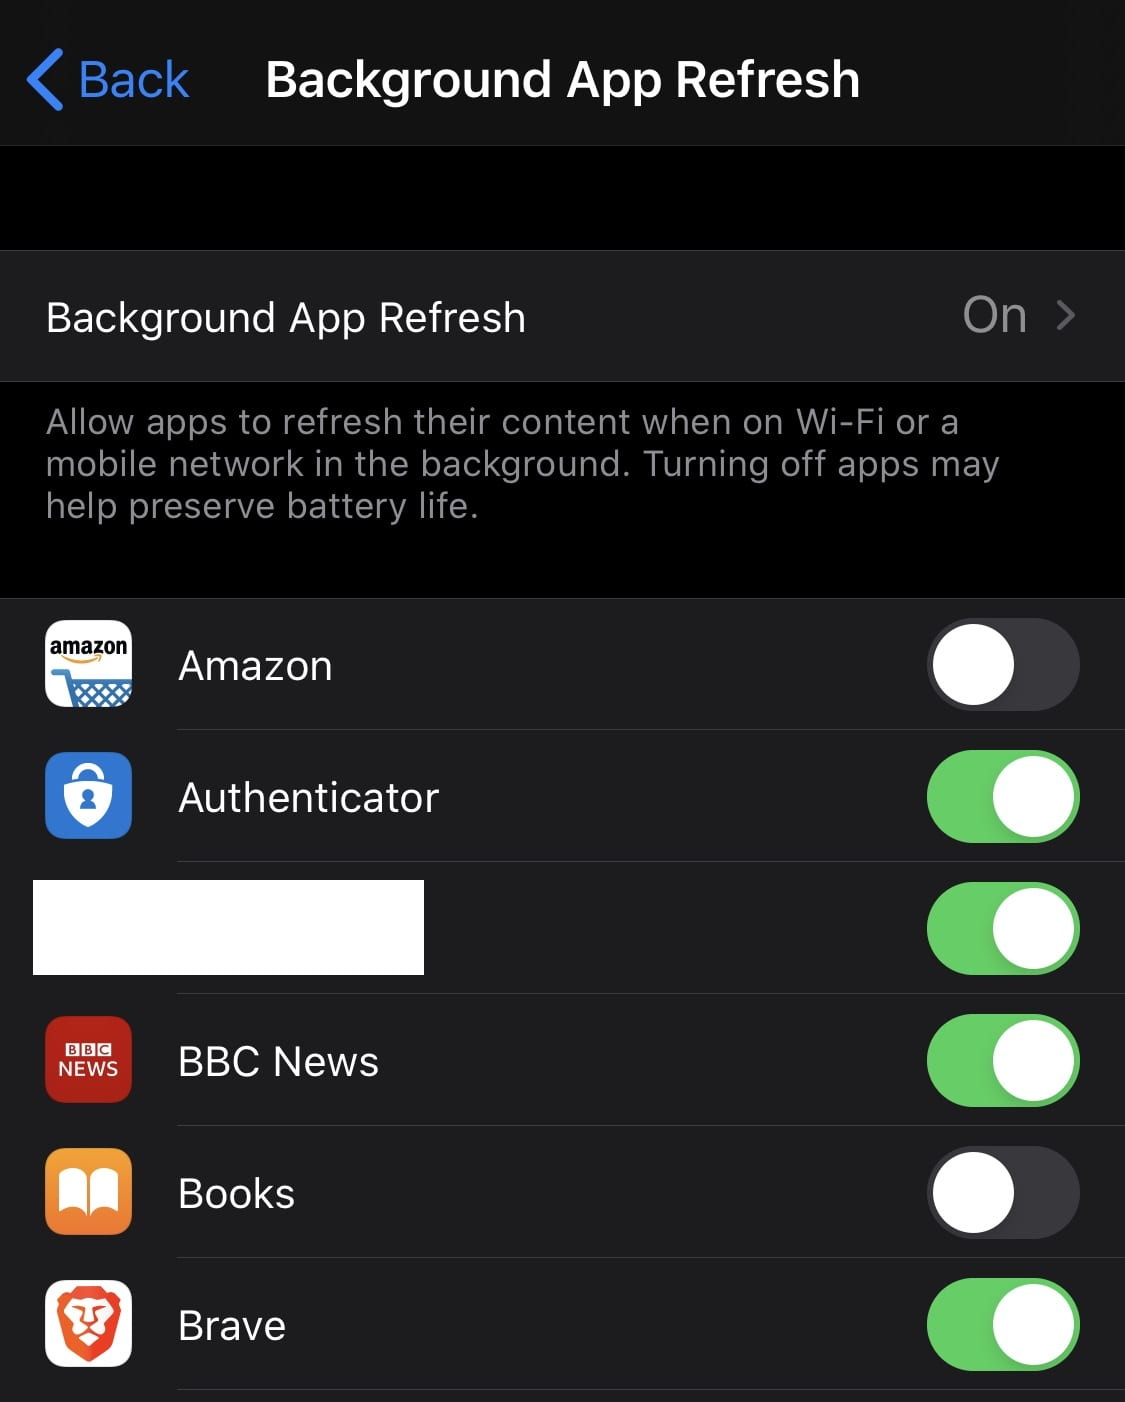 Iphone Ipad Enable Disable Background App Refresh Technipages